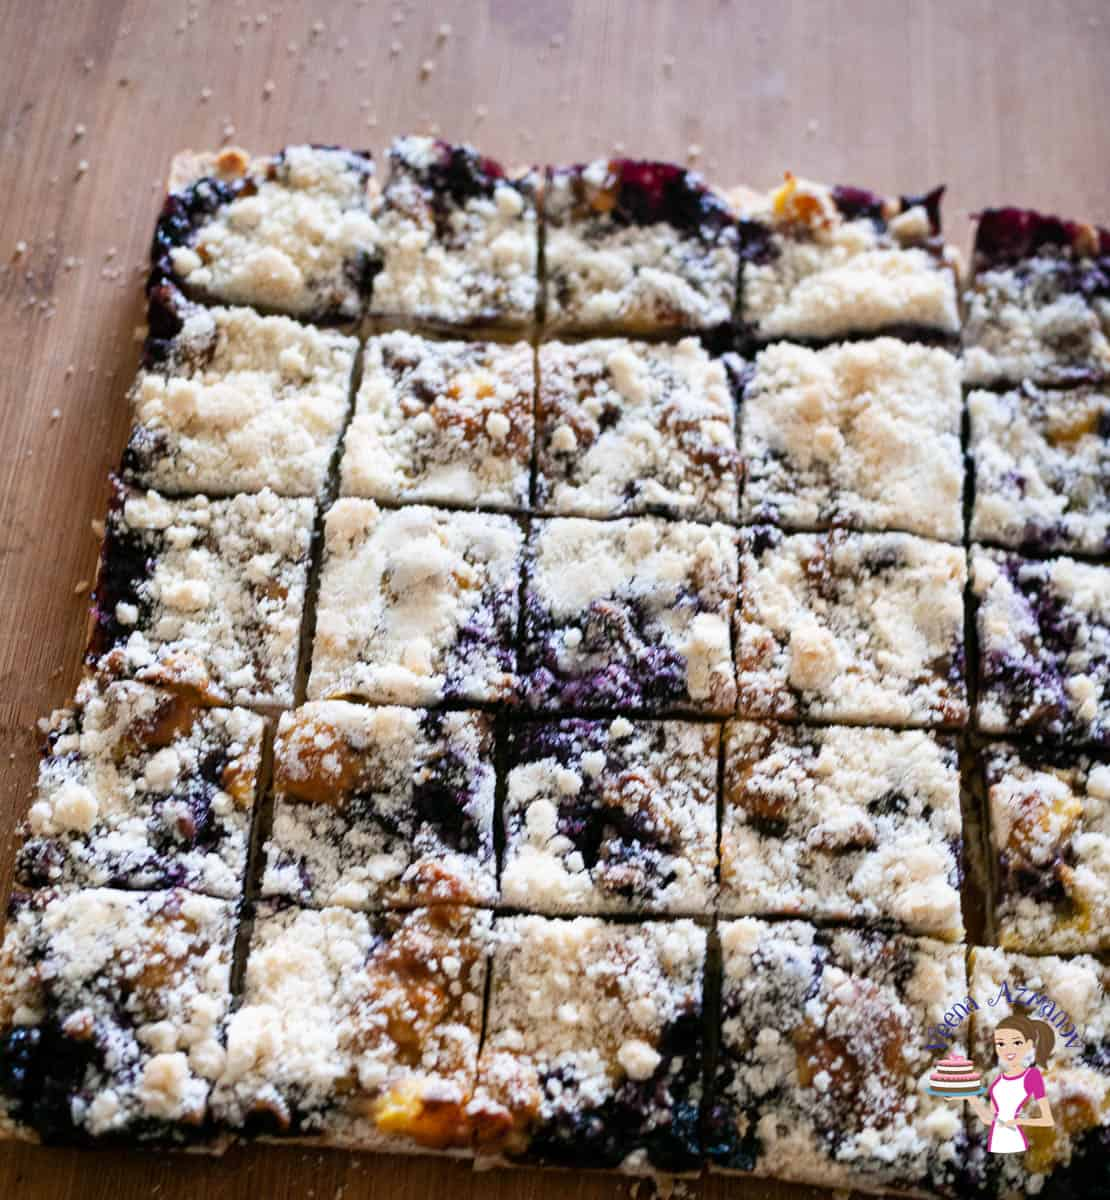 Blueberry bars cut on a wooden board